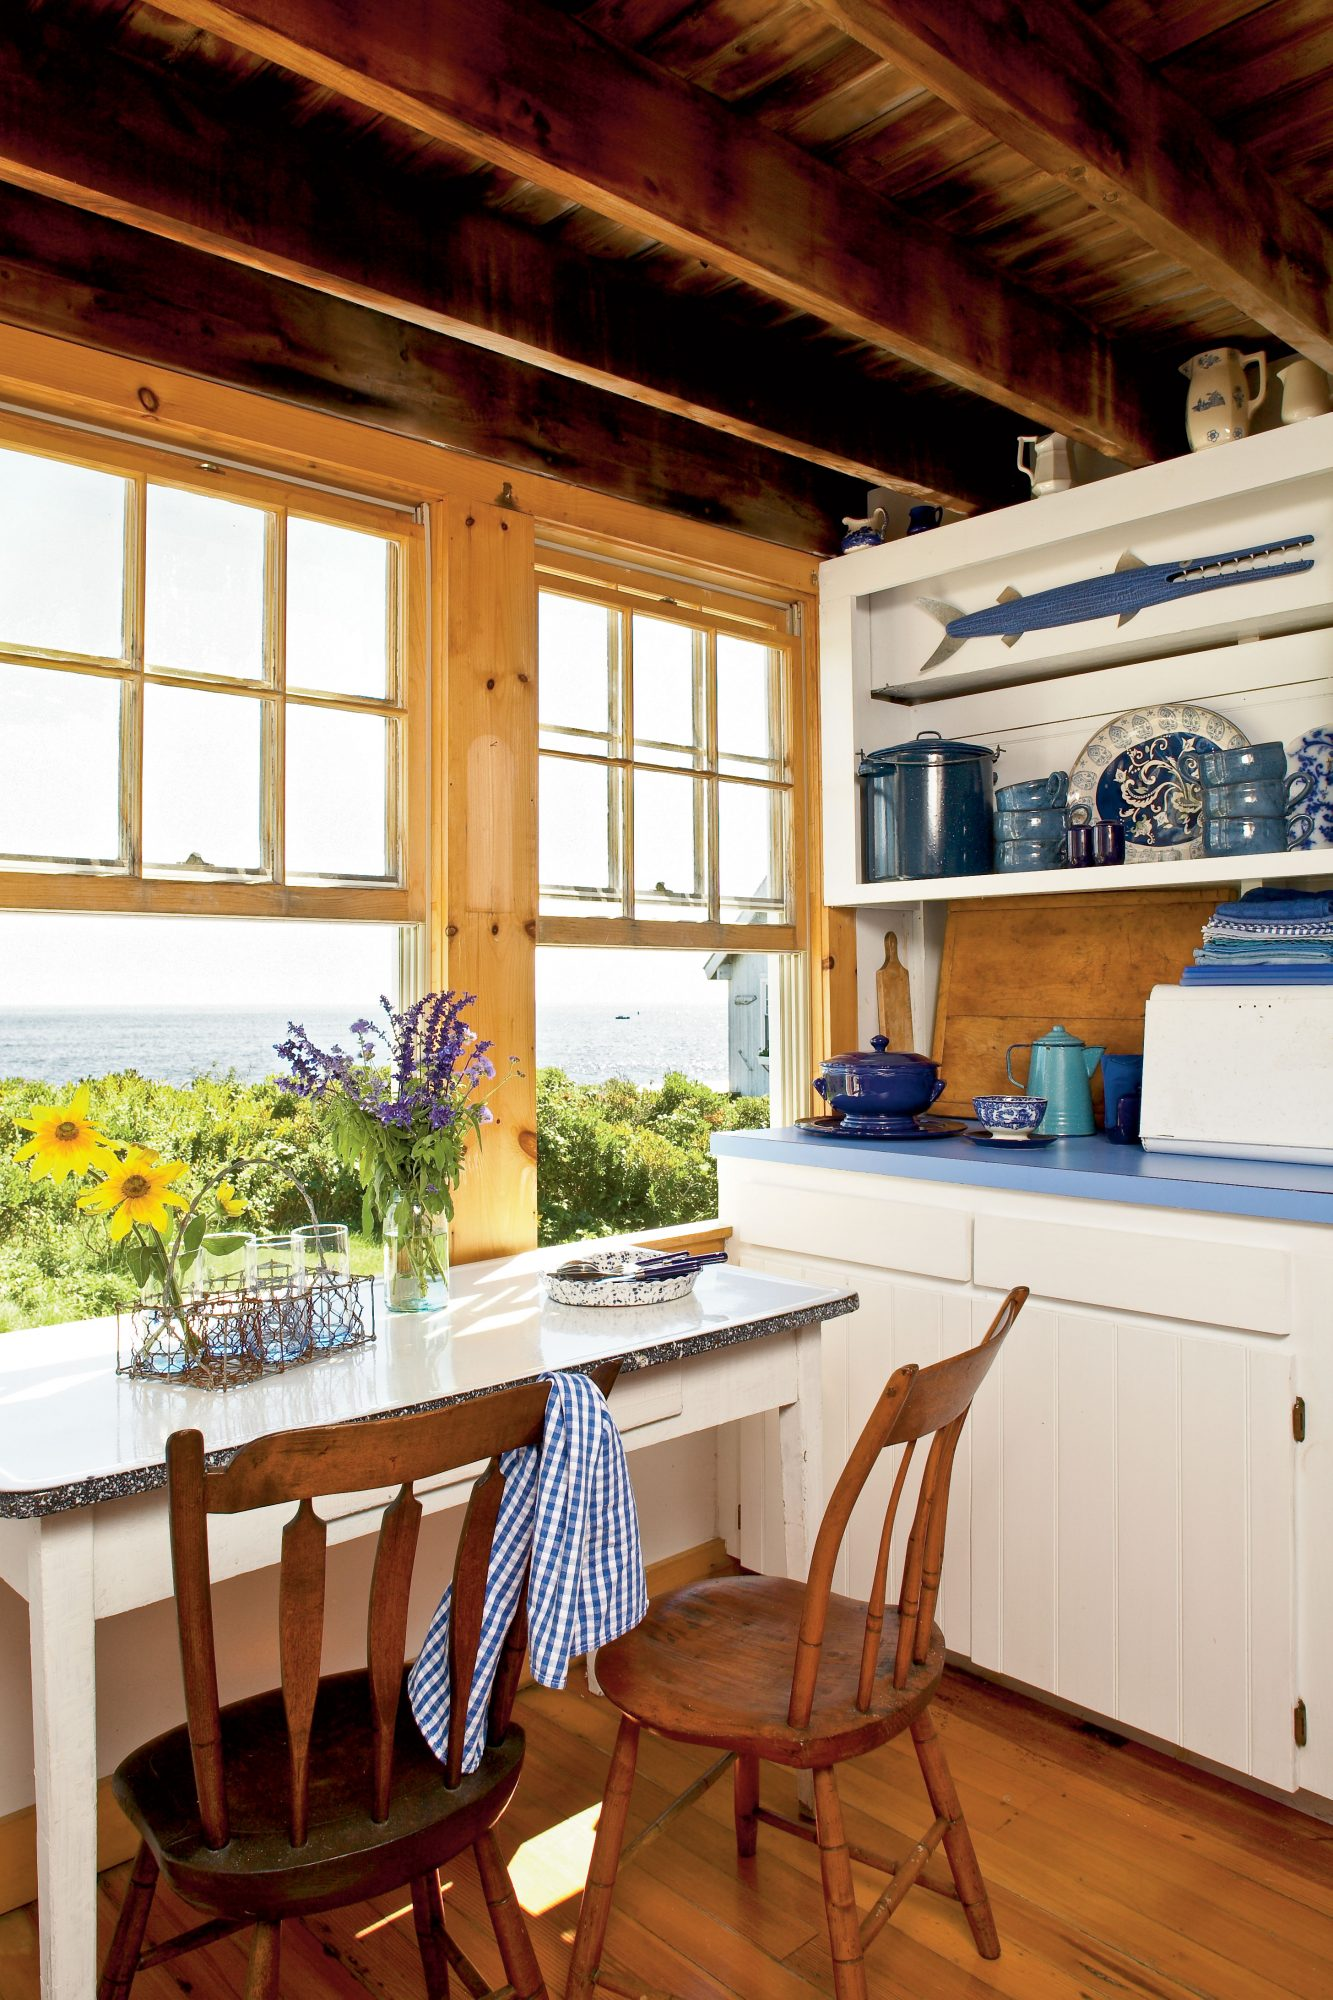 The small breakfast table placed square in front of the windows provides the best view of the waves crashing off Casco Bay. A collection of enamelware in the kitchen's open cabinets came with the house and was—surprisingly—in the homeowner's favorite shades of blue.